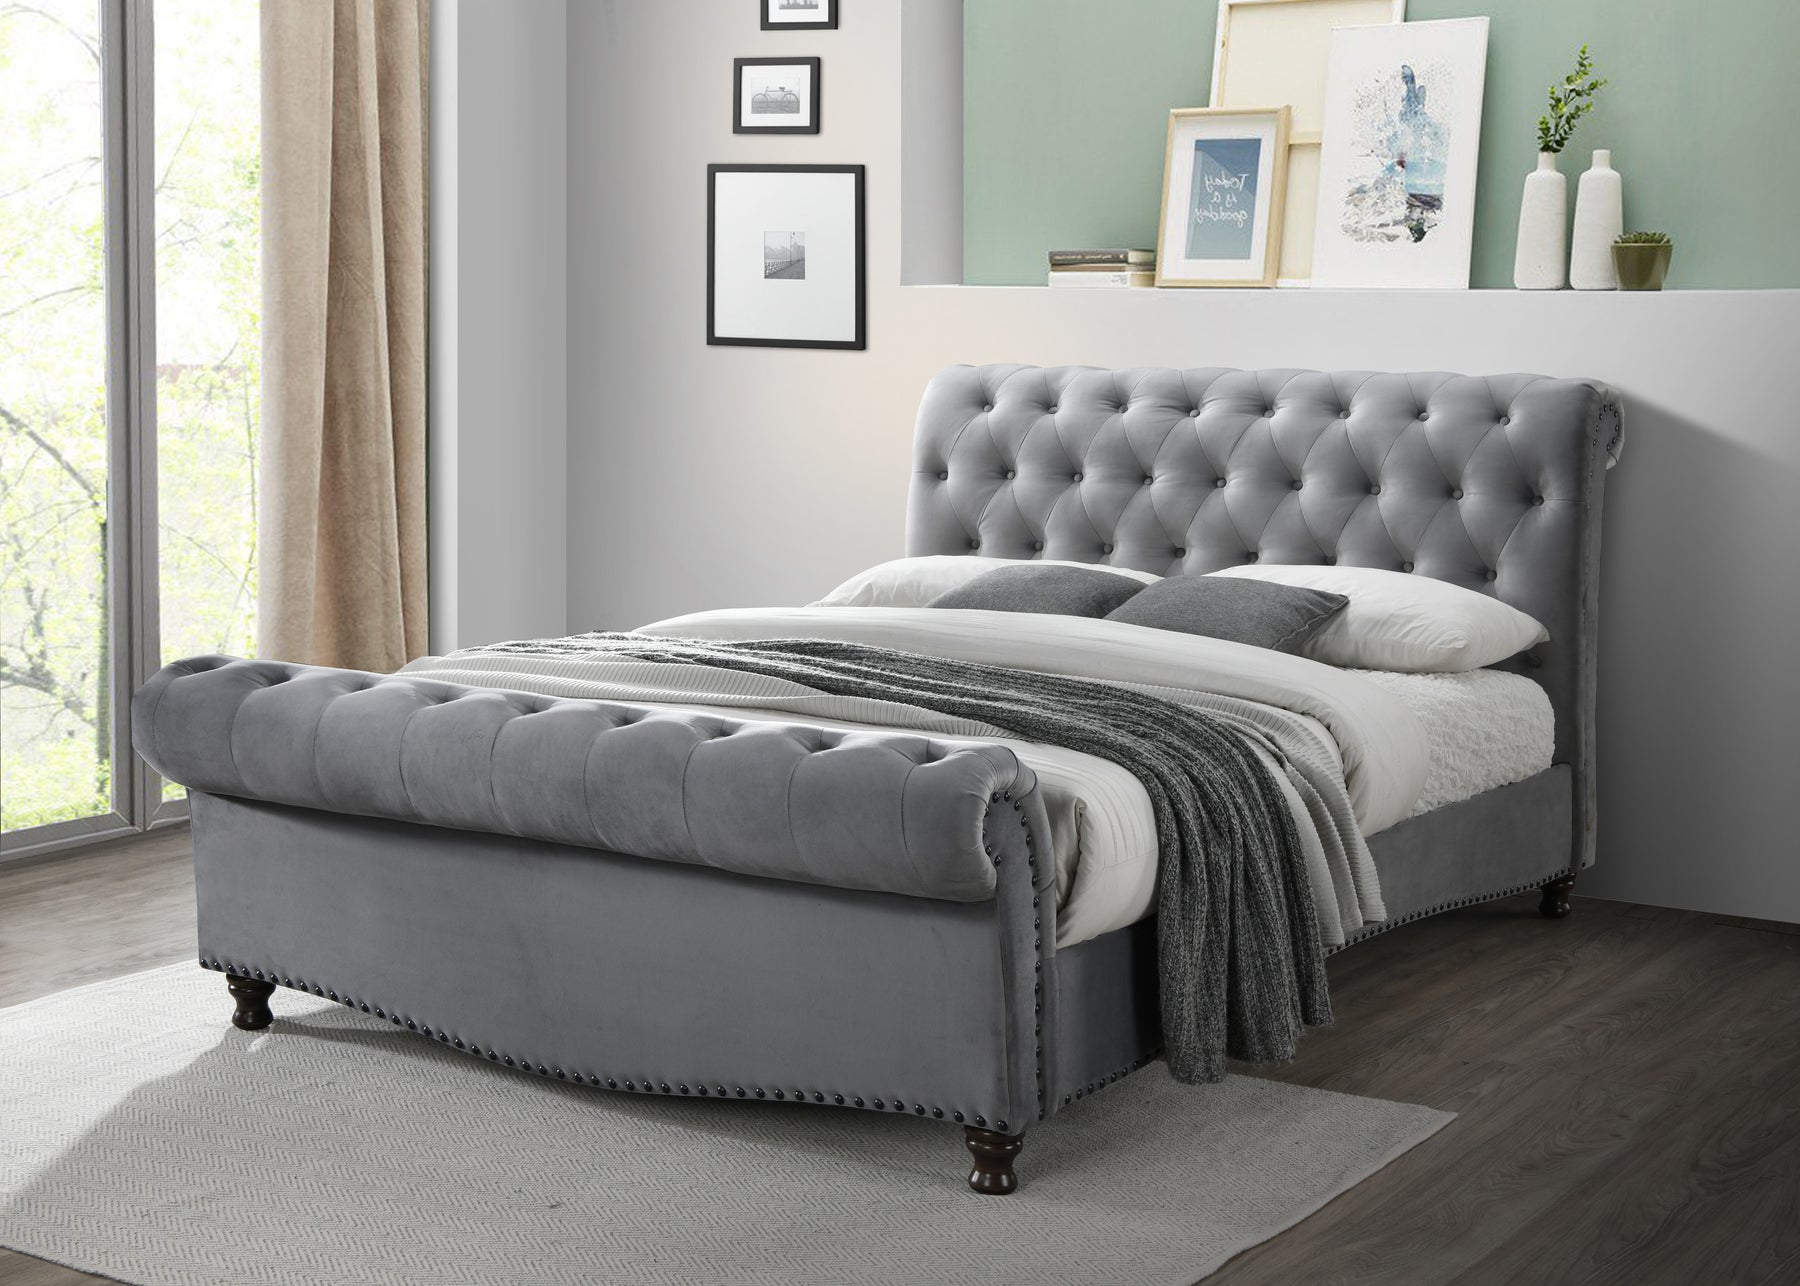 Verona Sleigh Style Fabric Bed Upholstered in Light Grey